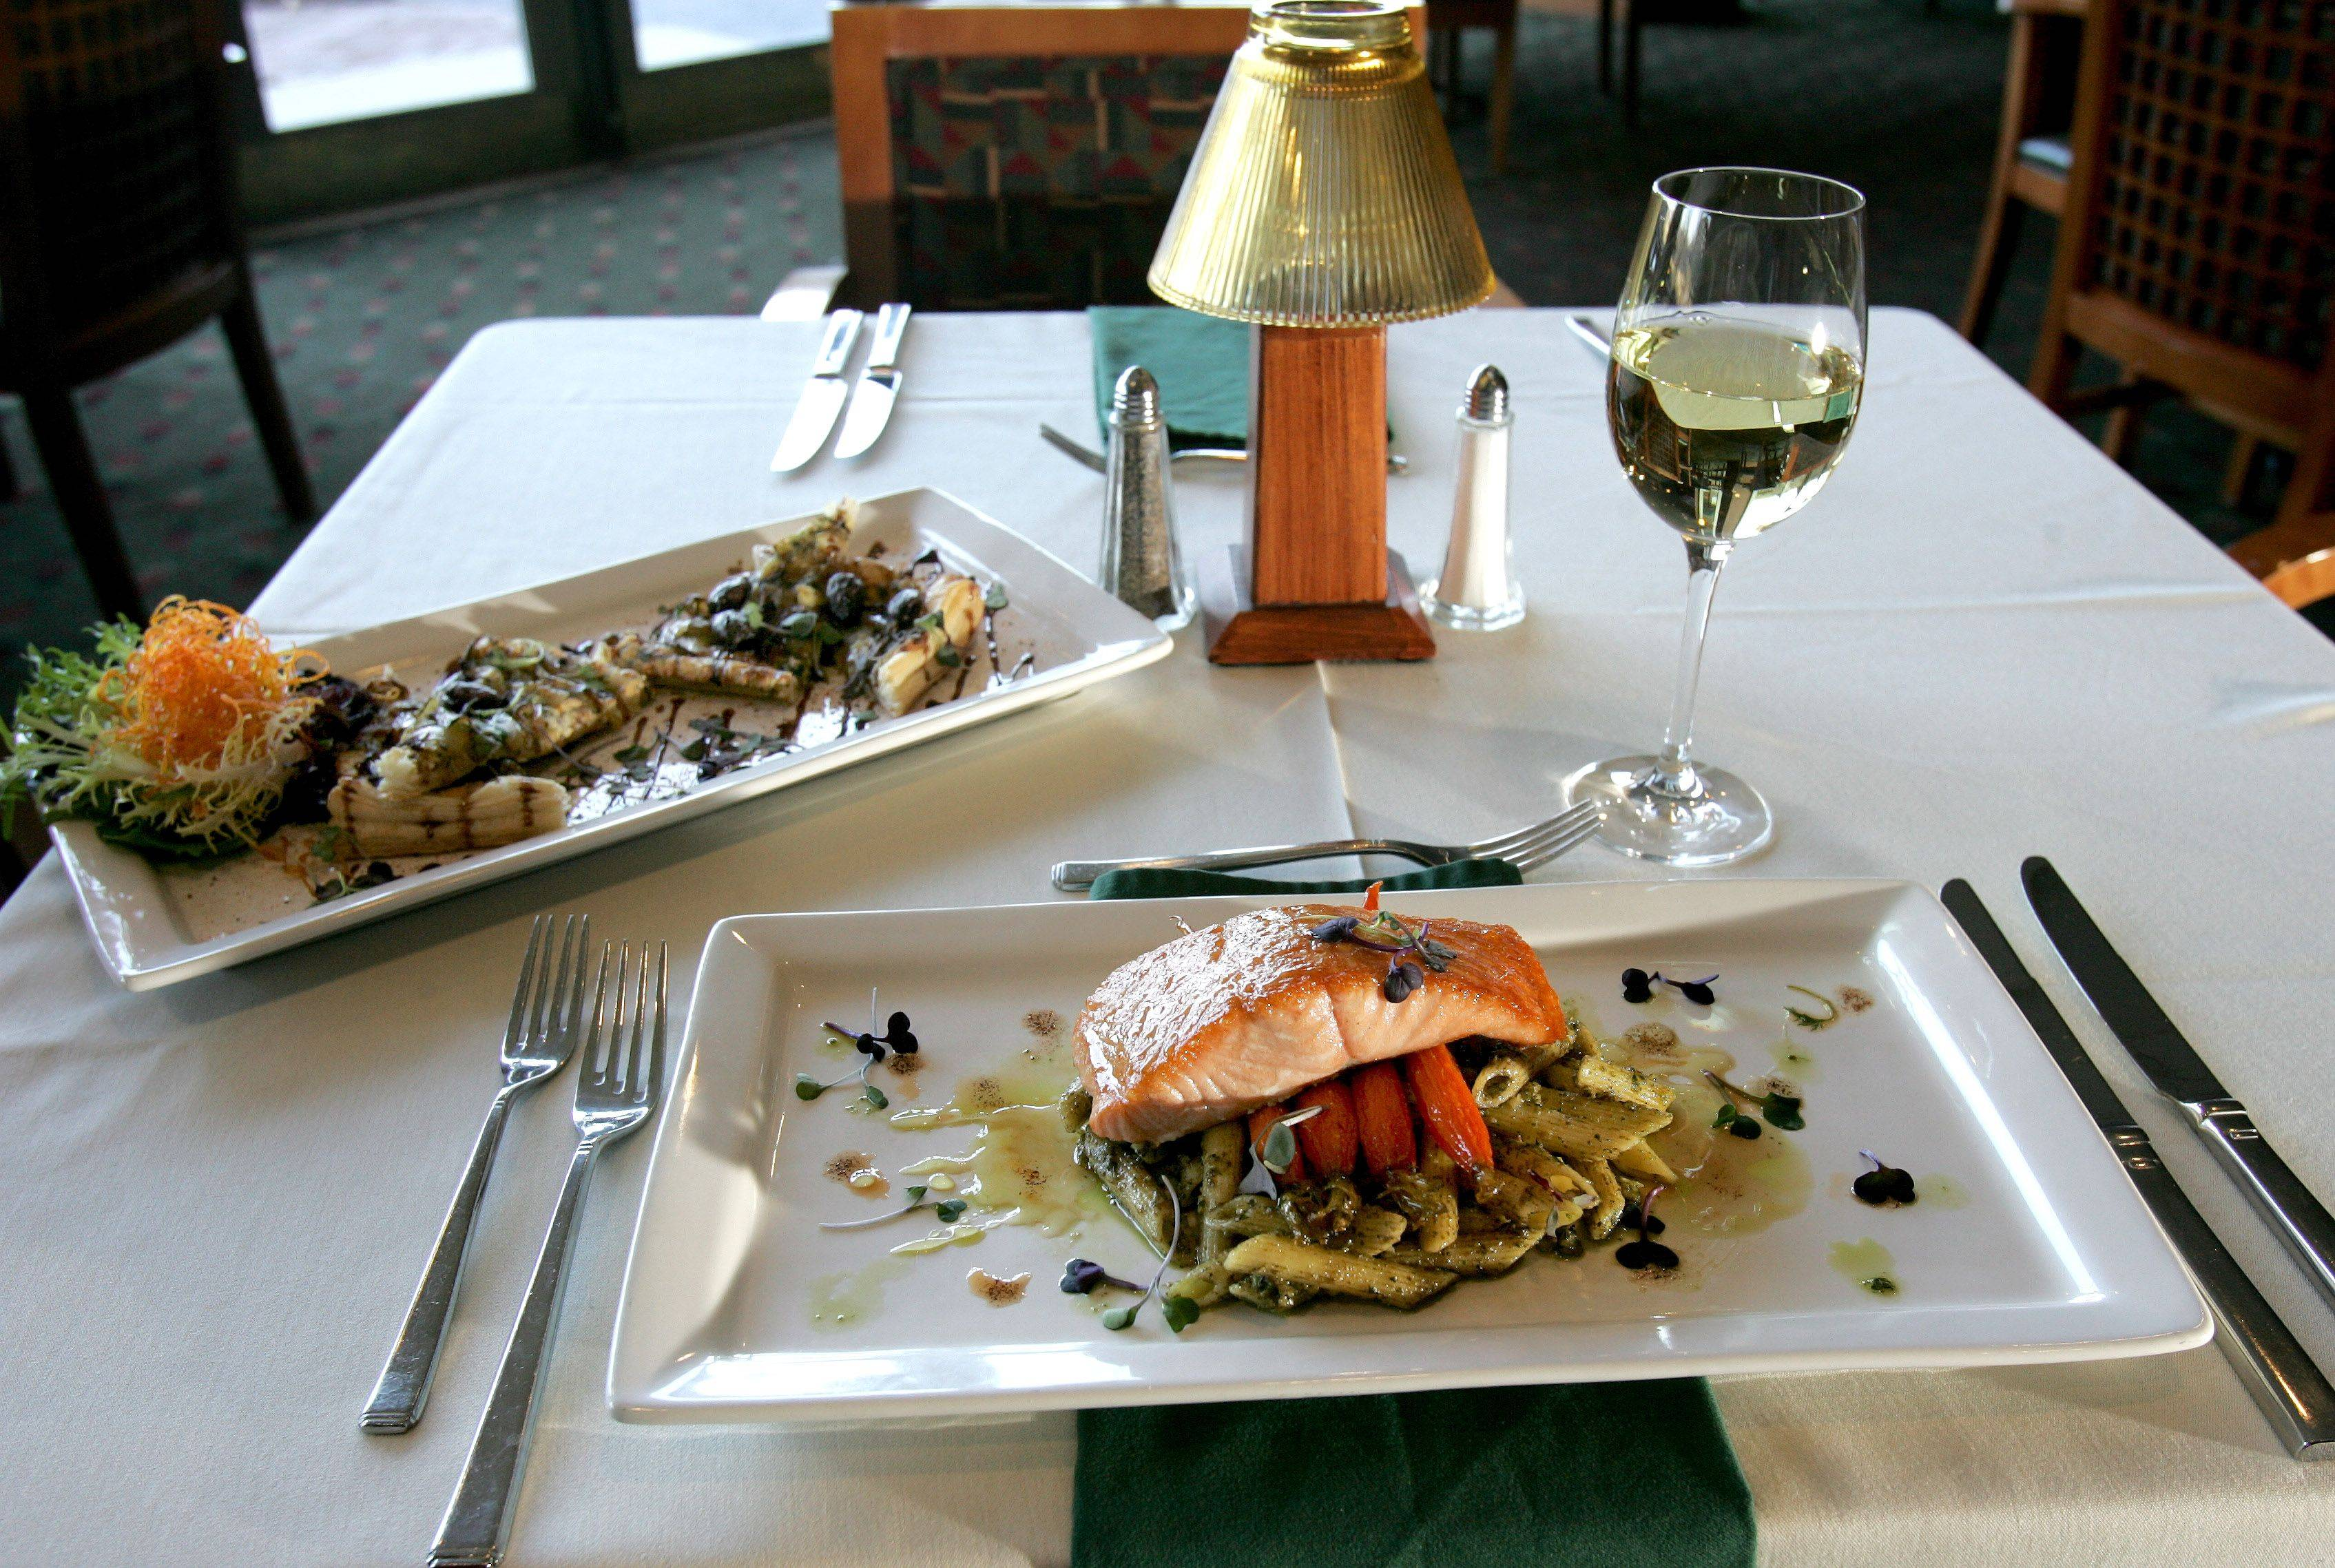 Confit of onion and fennel, left, and seared Pacific salmon with lavender-limoncello syrup will be offered at Prairie River at Eaglewood Resort and Spa in Itasca during Restaurant Week.